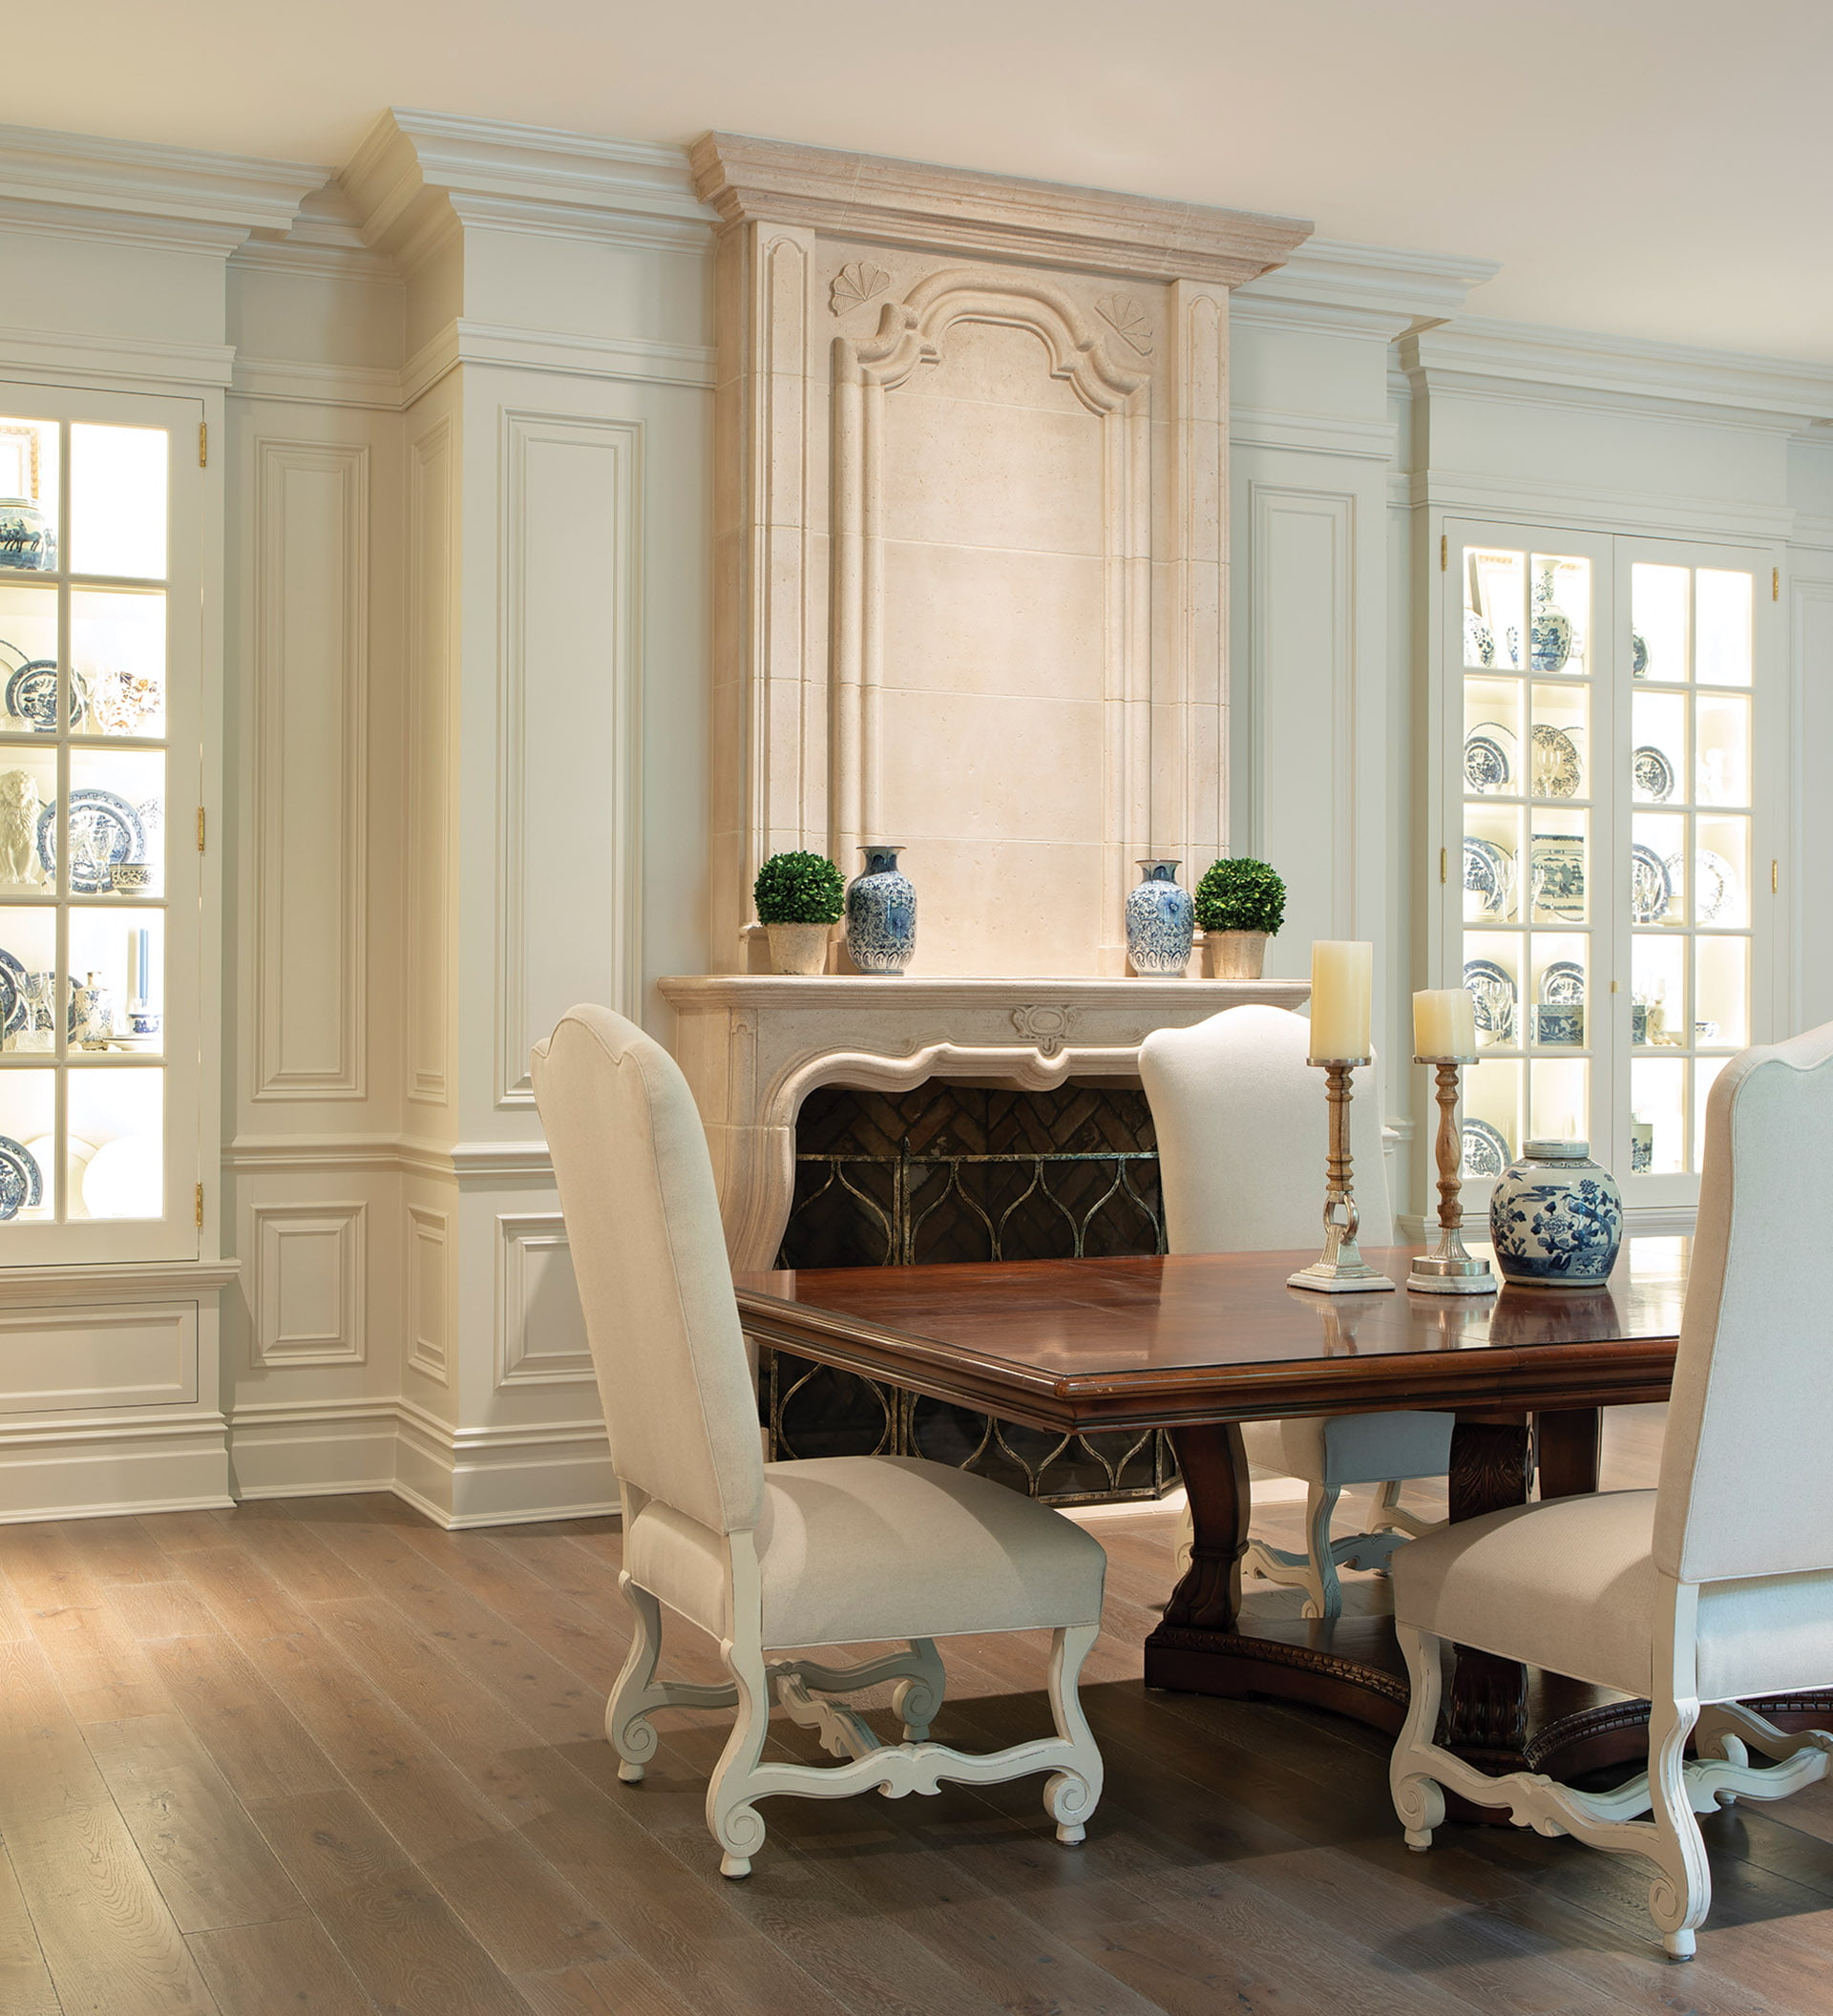 Dining room displays china collection in glass-fronted cabinets.